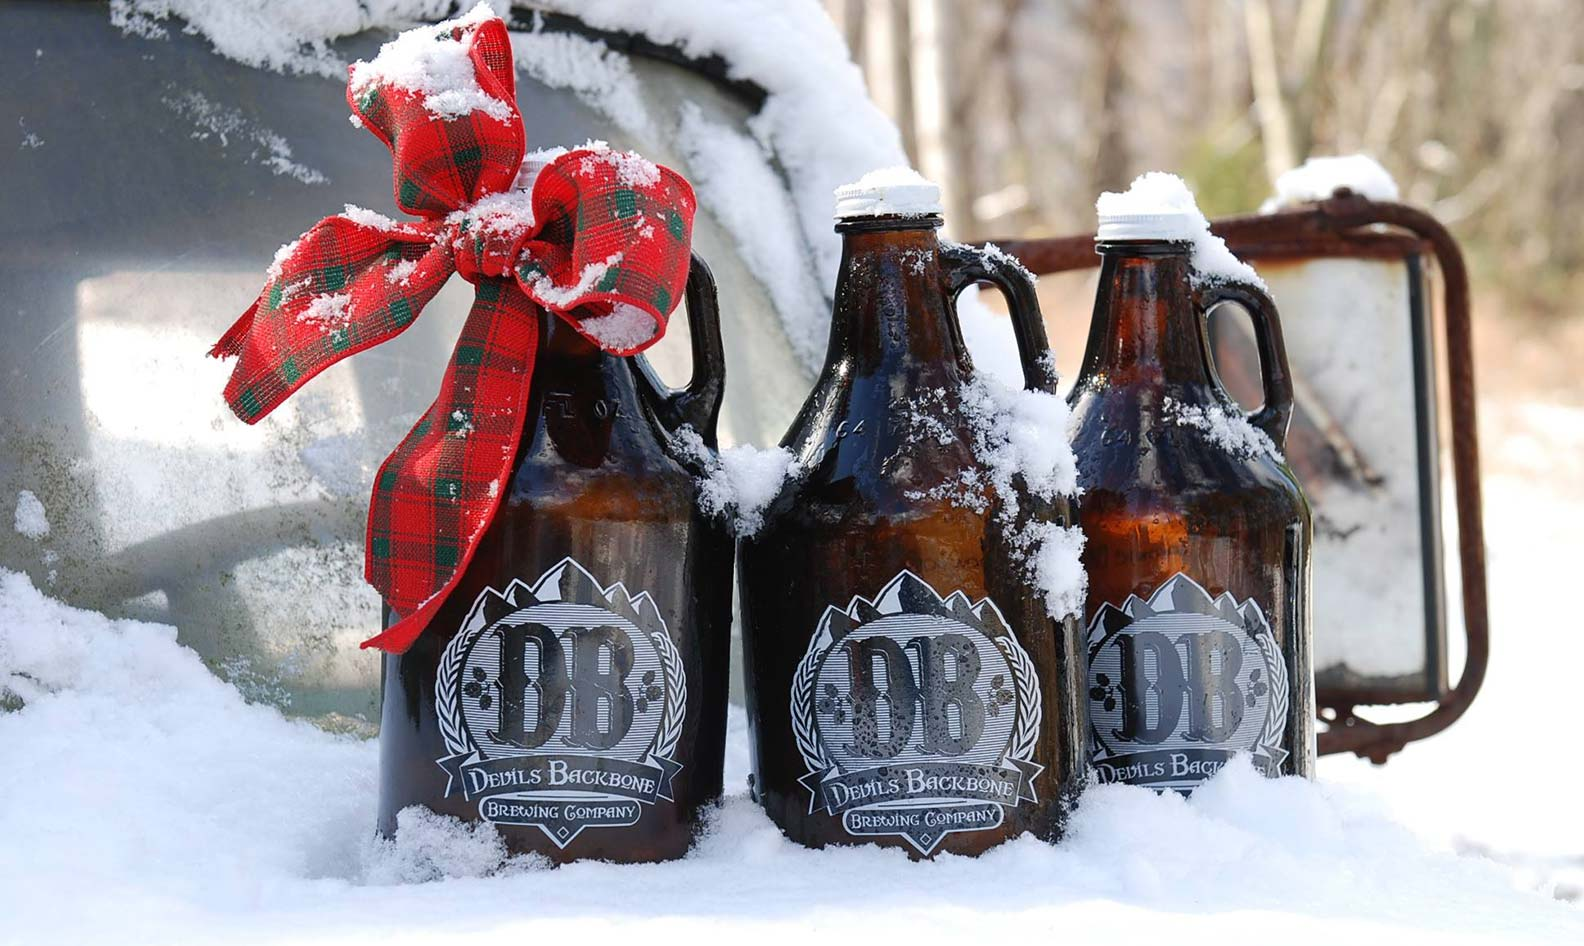 Devils Backbone growlers in the snow